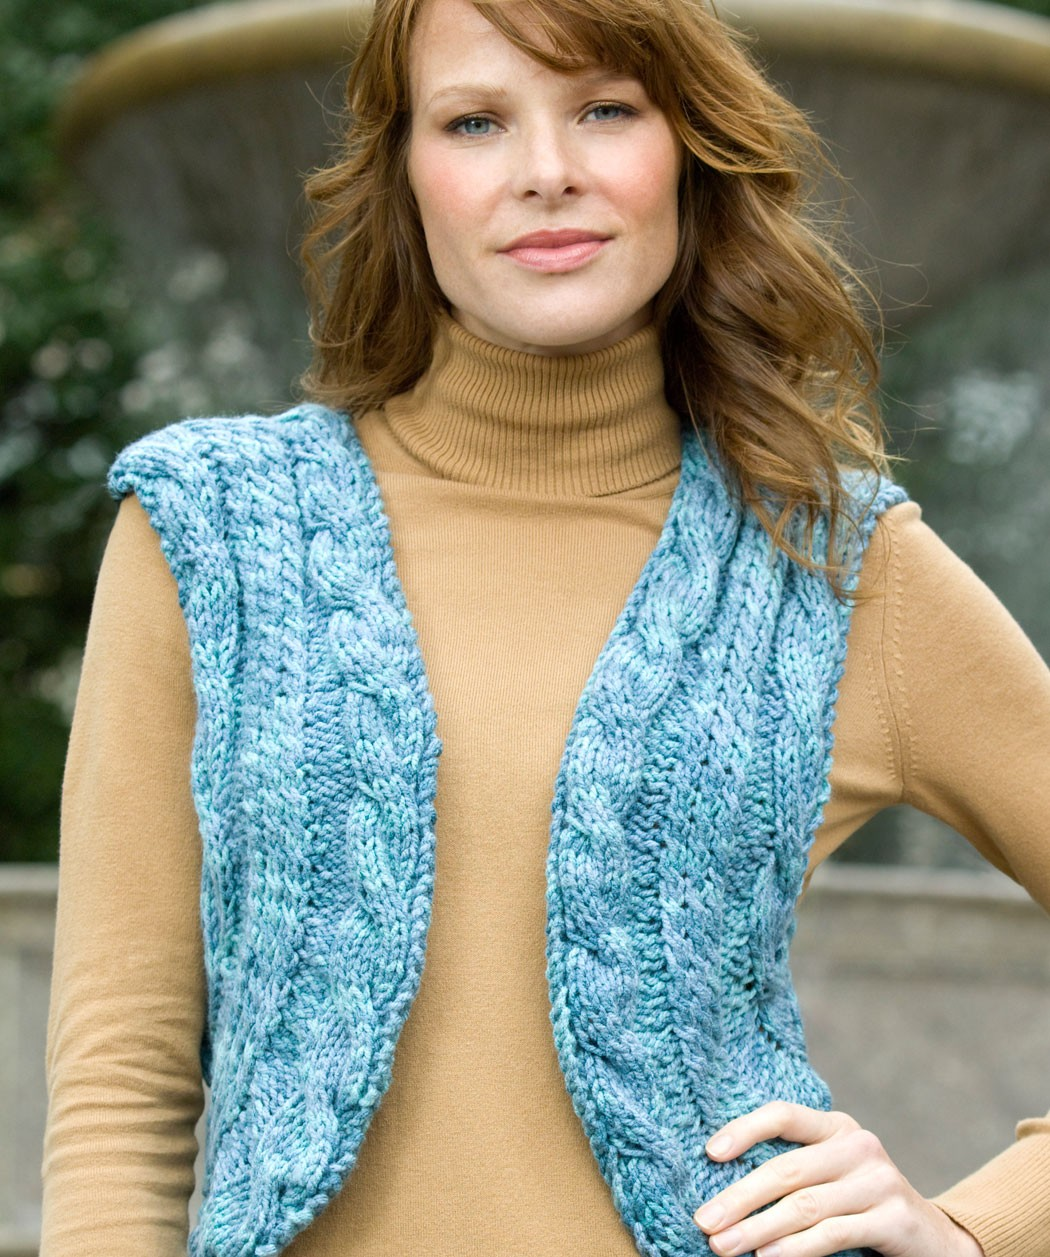 Vest Jumper Knitting Pattern : Cable Knit Sweater Patterns A Knitting Blog